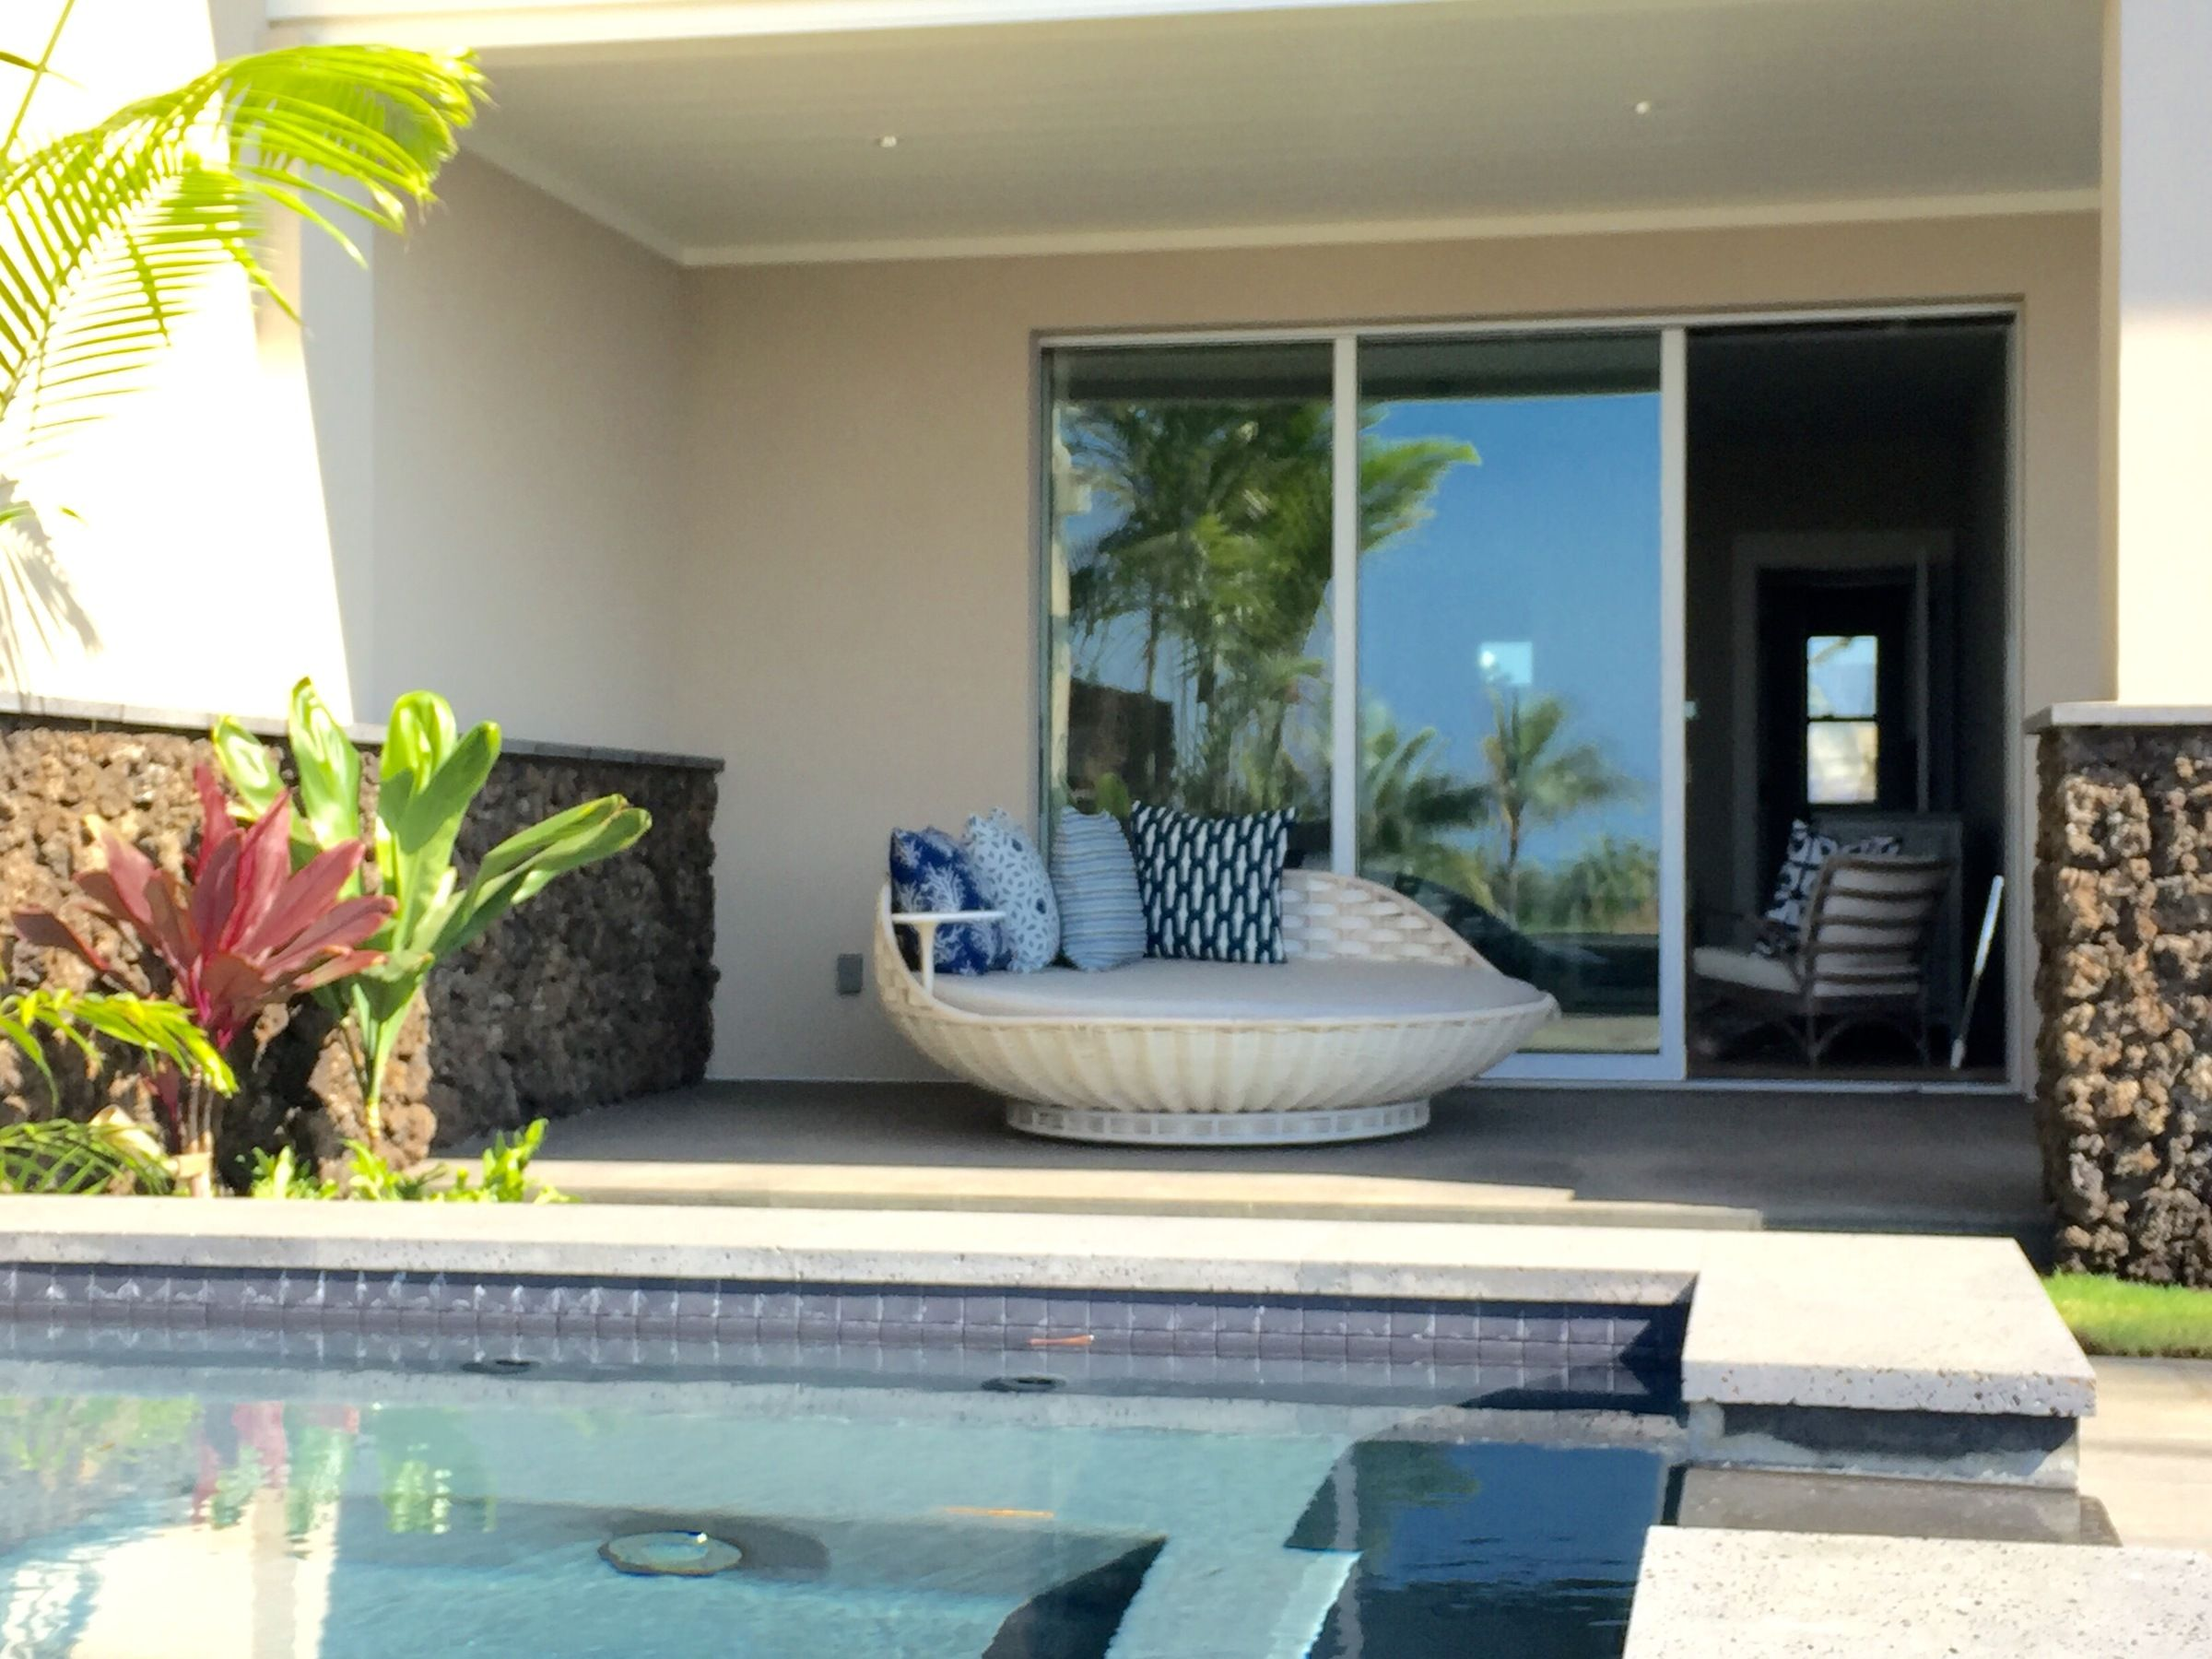 Amazing Pacific Home Interior Design | Big Island Residence | Furnishing And  Designing Your Pacific Lifestyle |